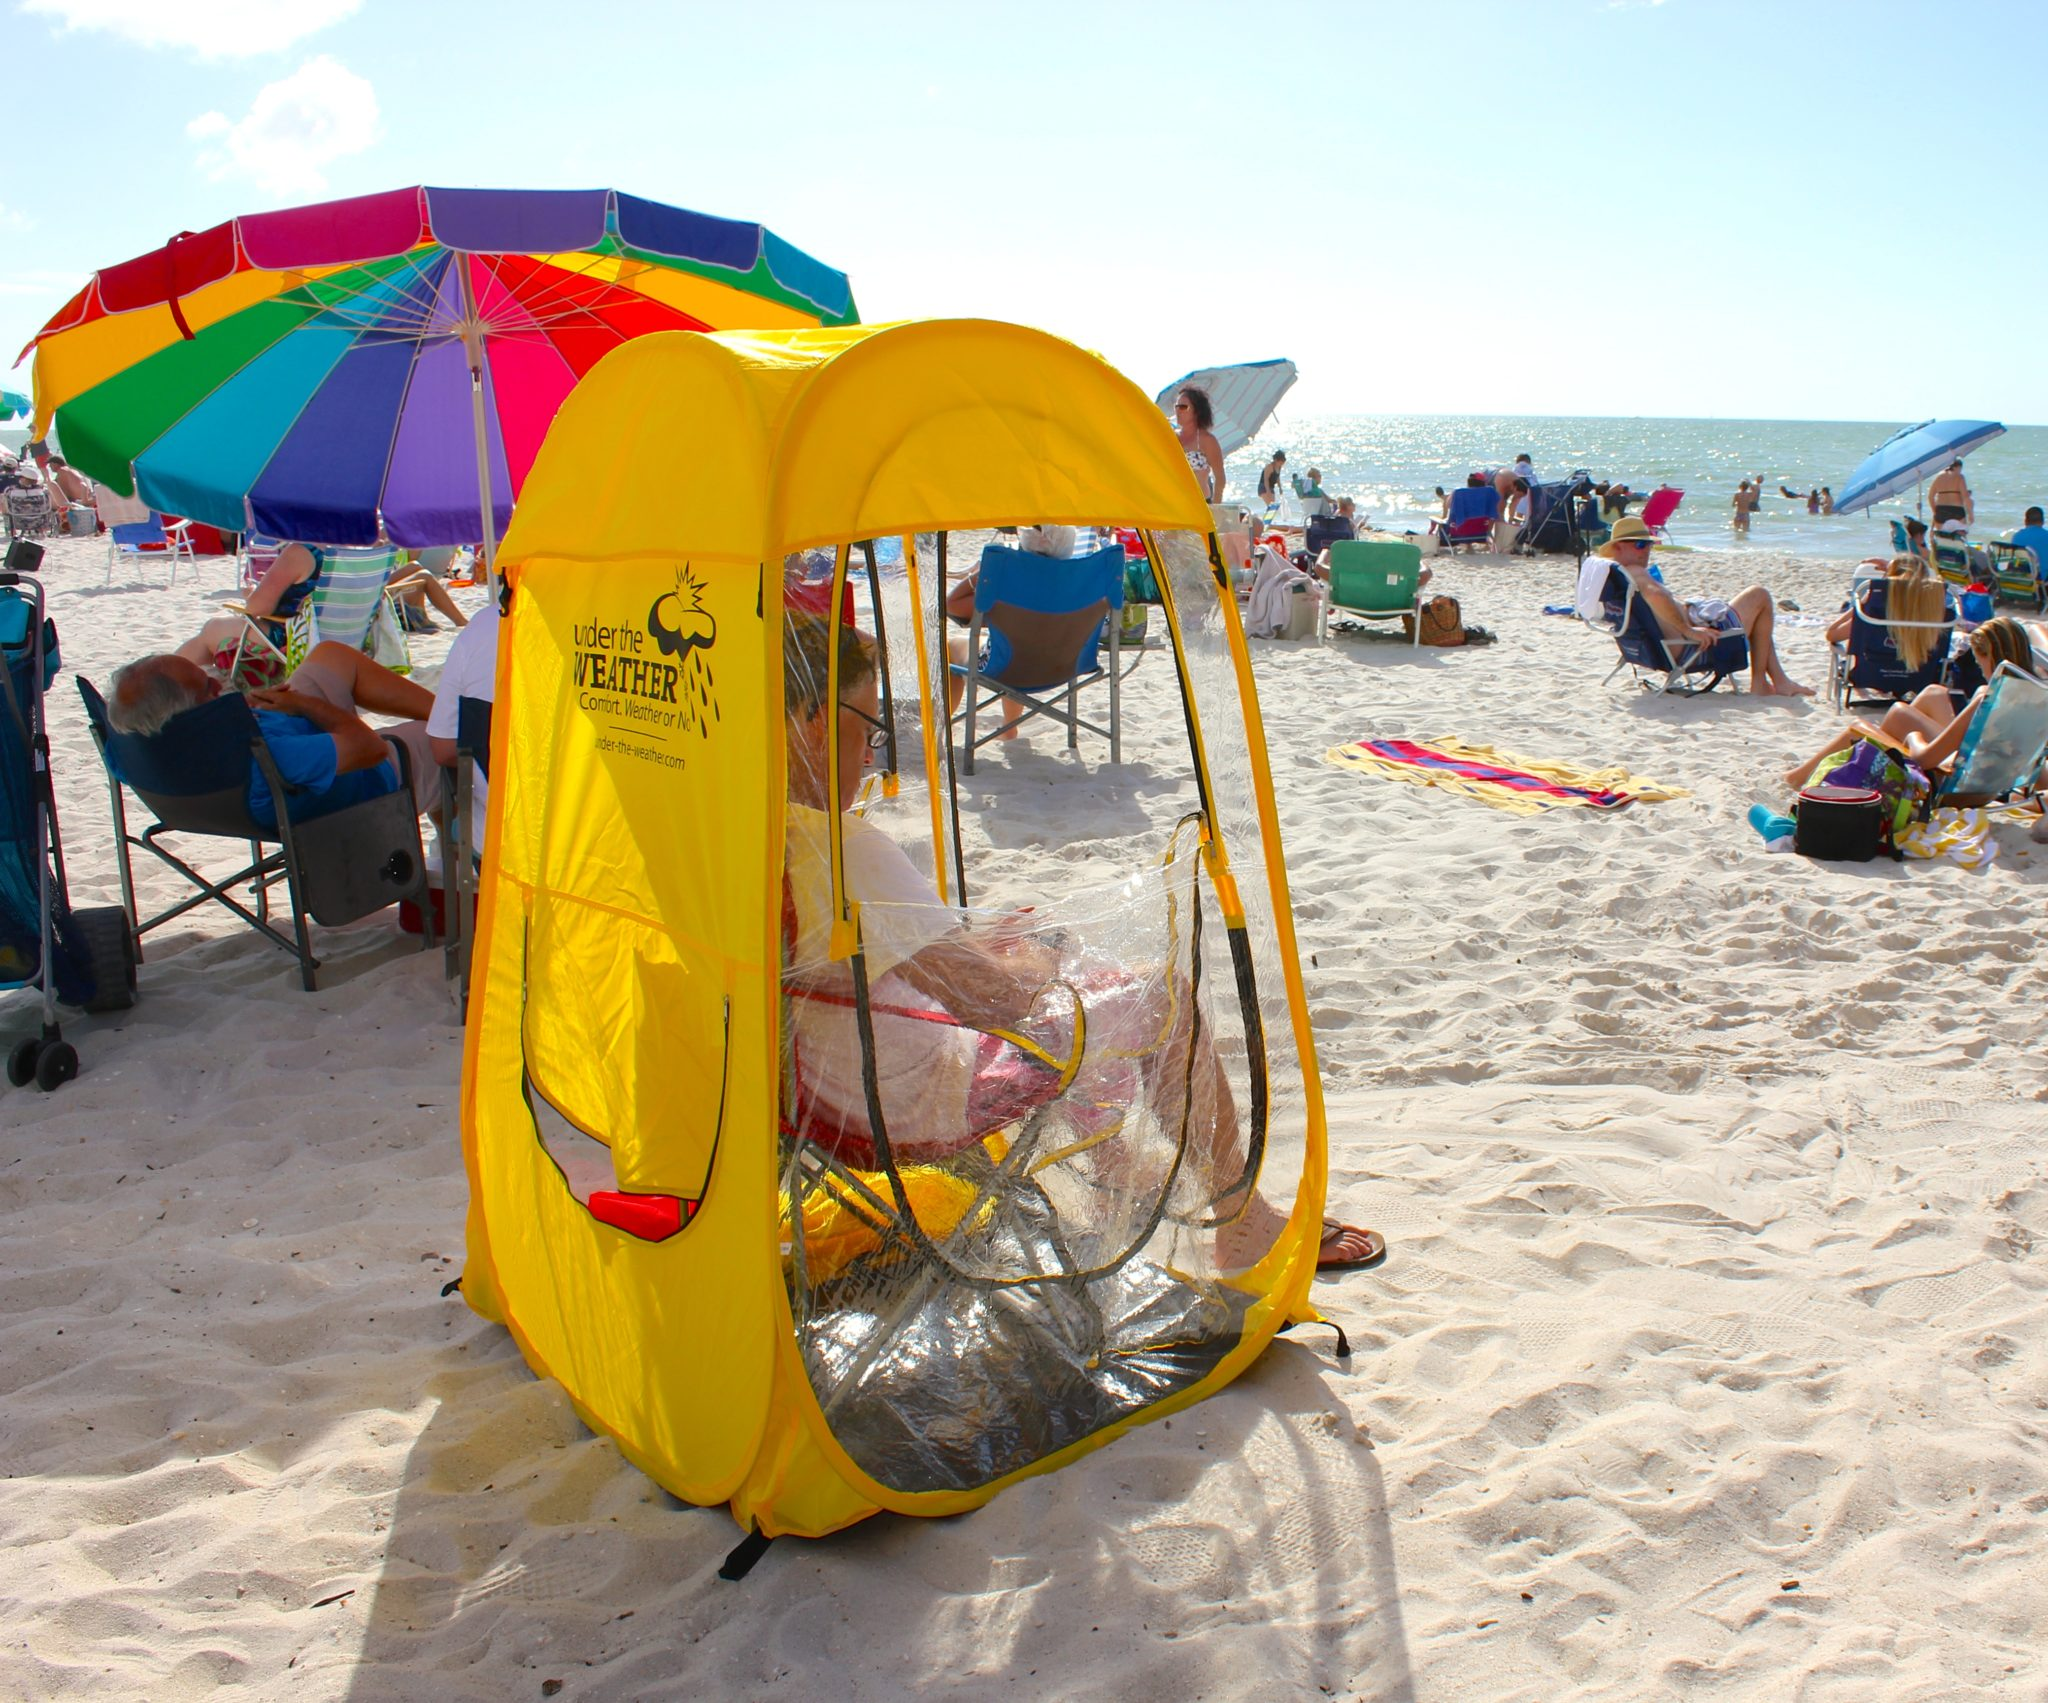 under the weather pop up tent easy up canopy beach shade